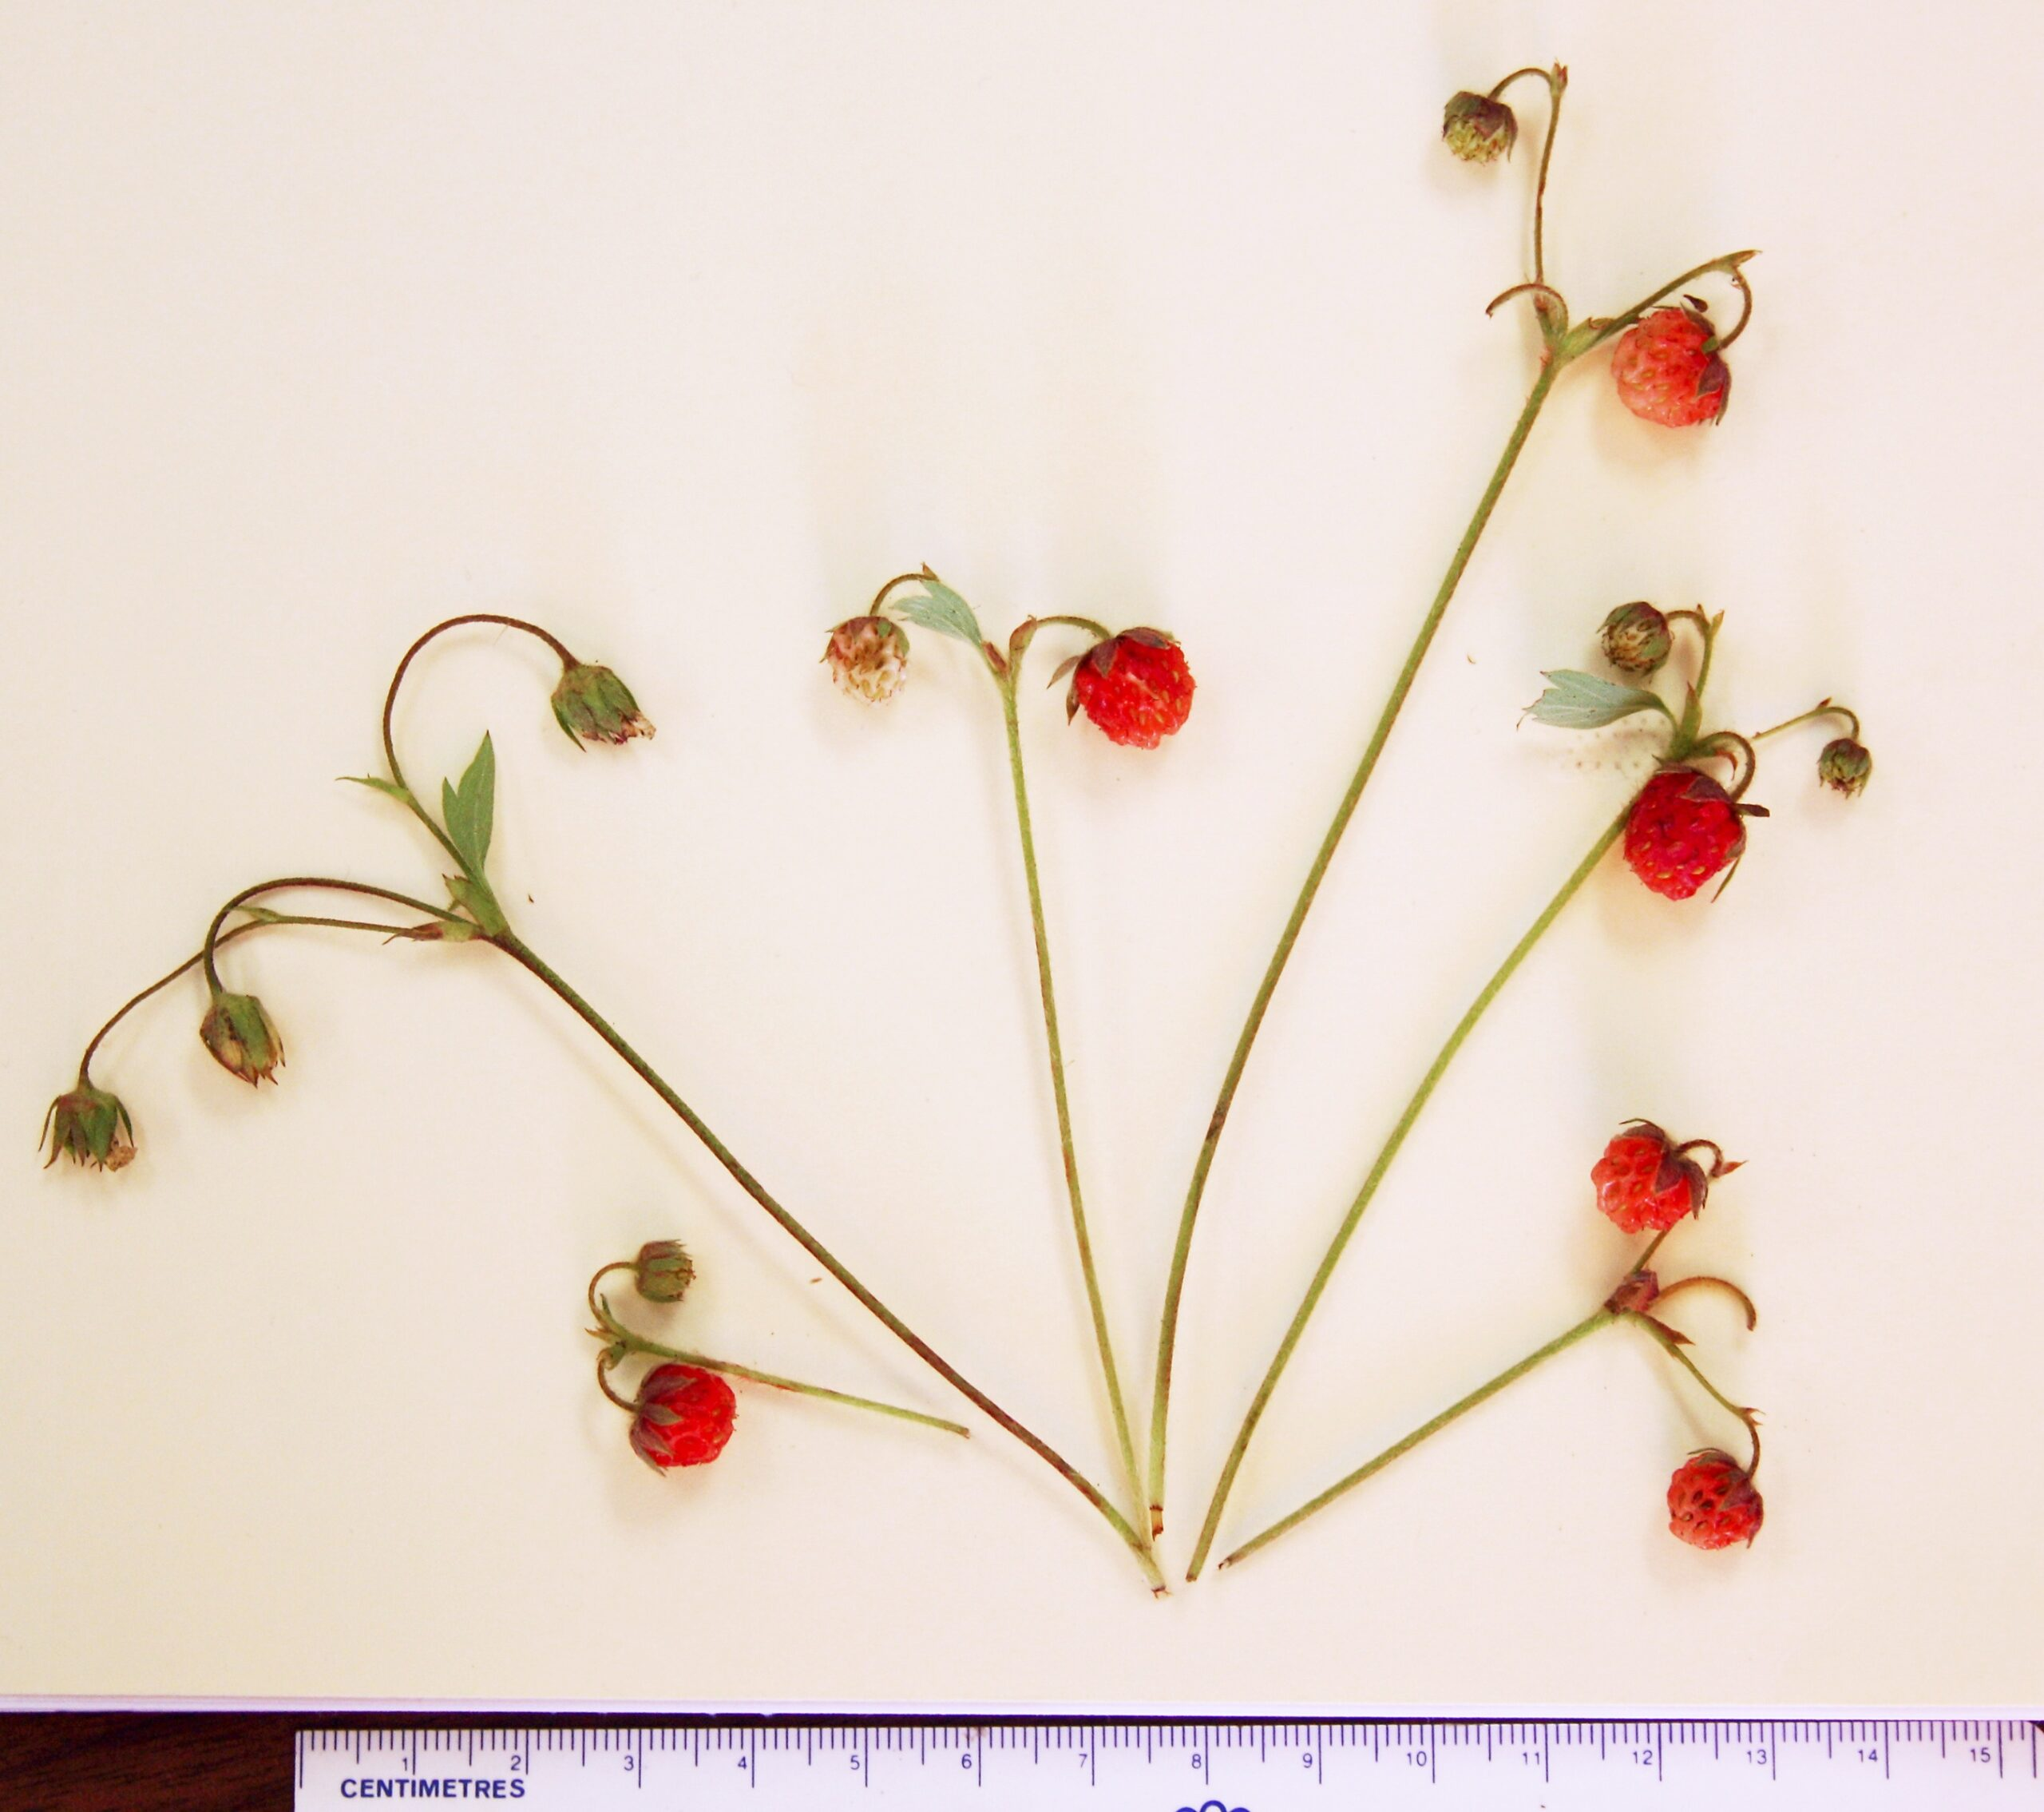 New Wild Strawberry Species Discovered